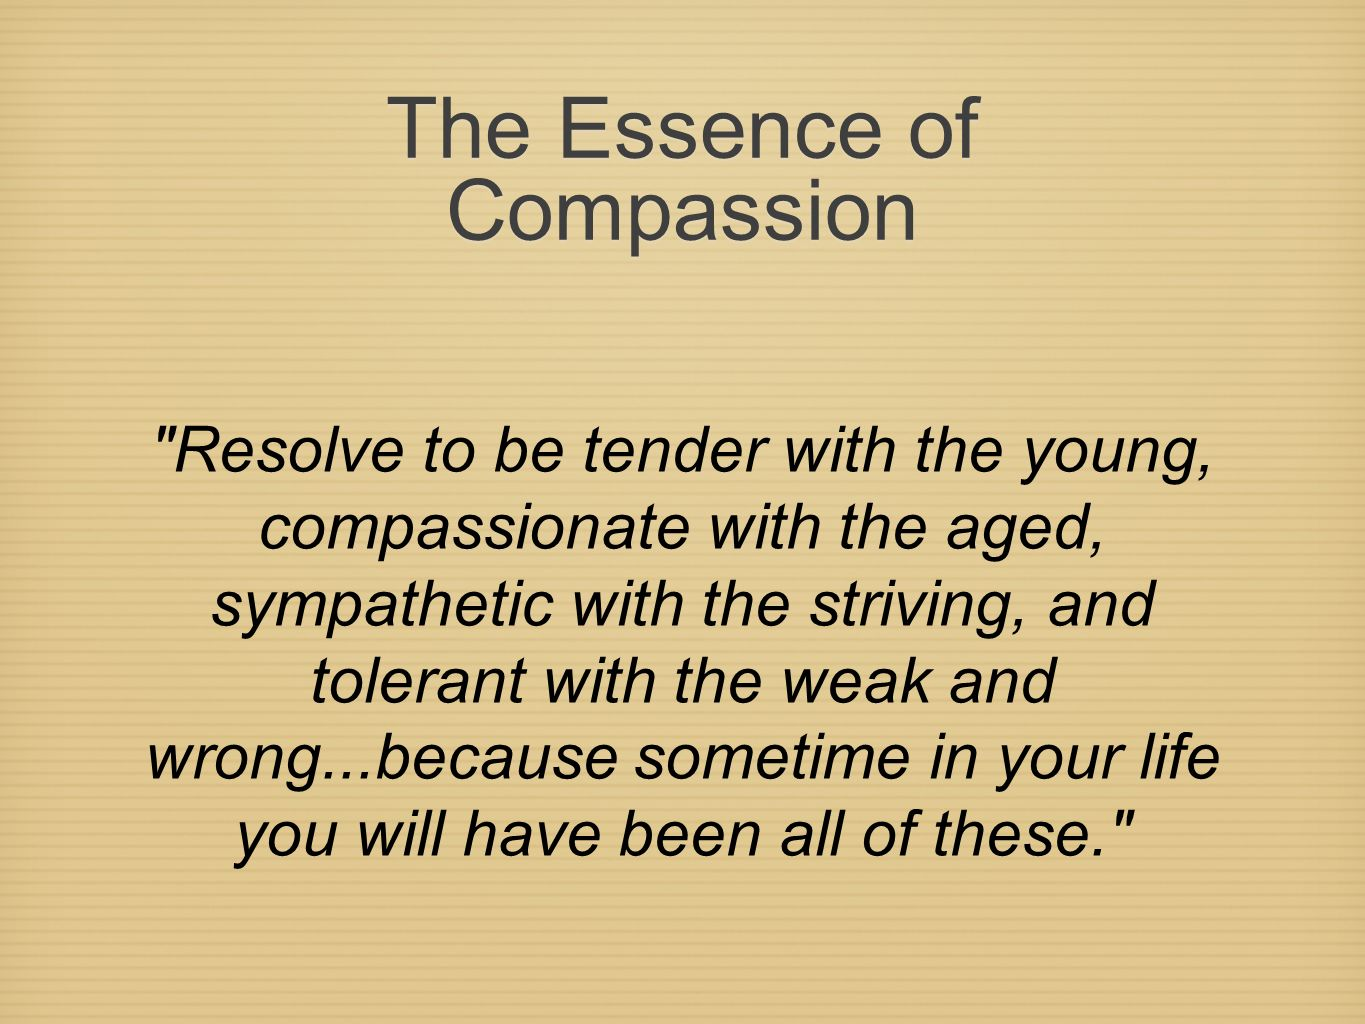 The Essence of Compassion Resolve to be tender with the young, compassionate with the aged, sympathetic with the striving, and tolerant with the weak and wrong...because sometime in your life you will have been all of these.